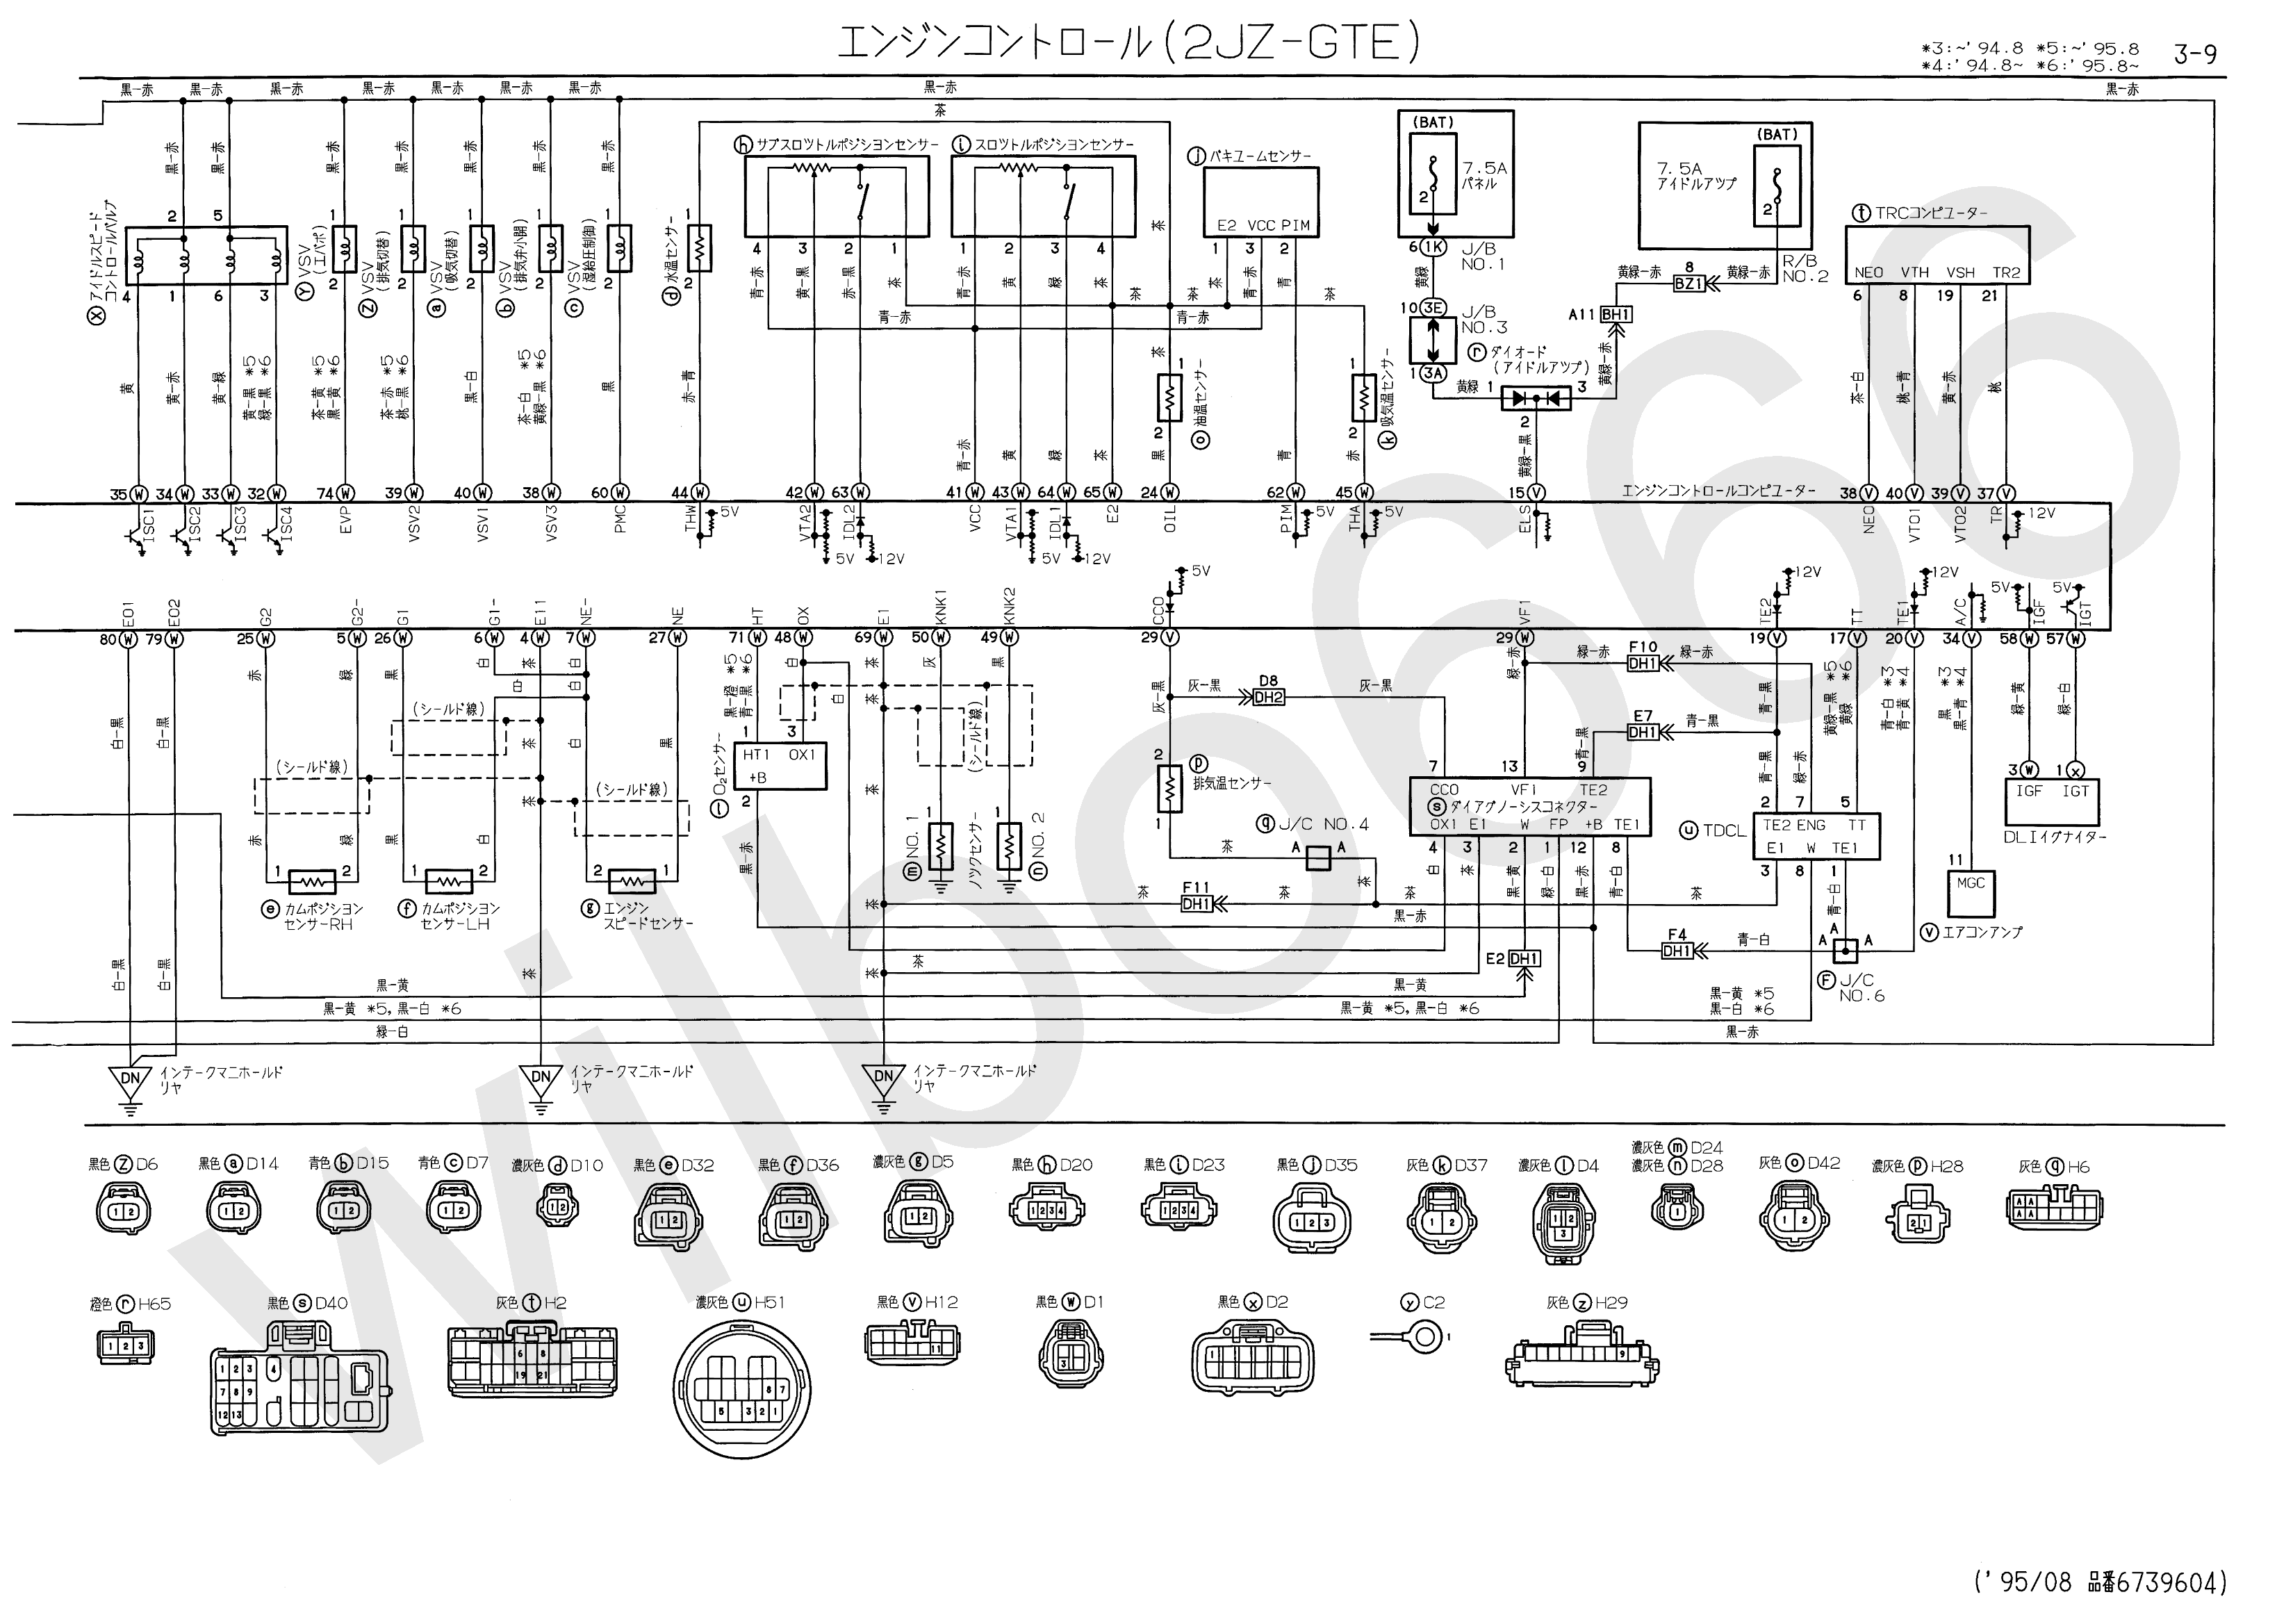 JZS14%23%2C+UZS14%23+Electrical+Wiring+Diagram+6739604+3 9 2jz wiring diagram basic home electrical wiring diagrams \u2022 wiring sr20det starter wiring diagram at edmiracle.co